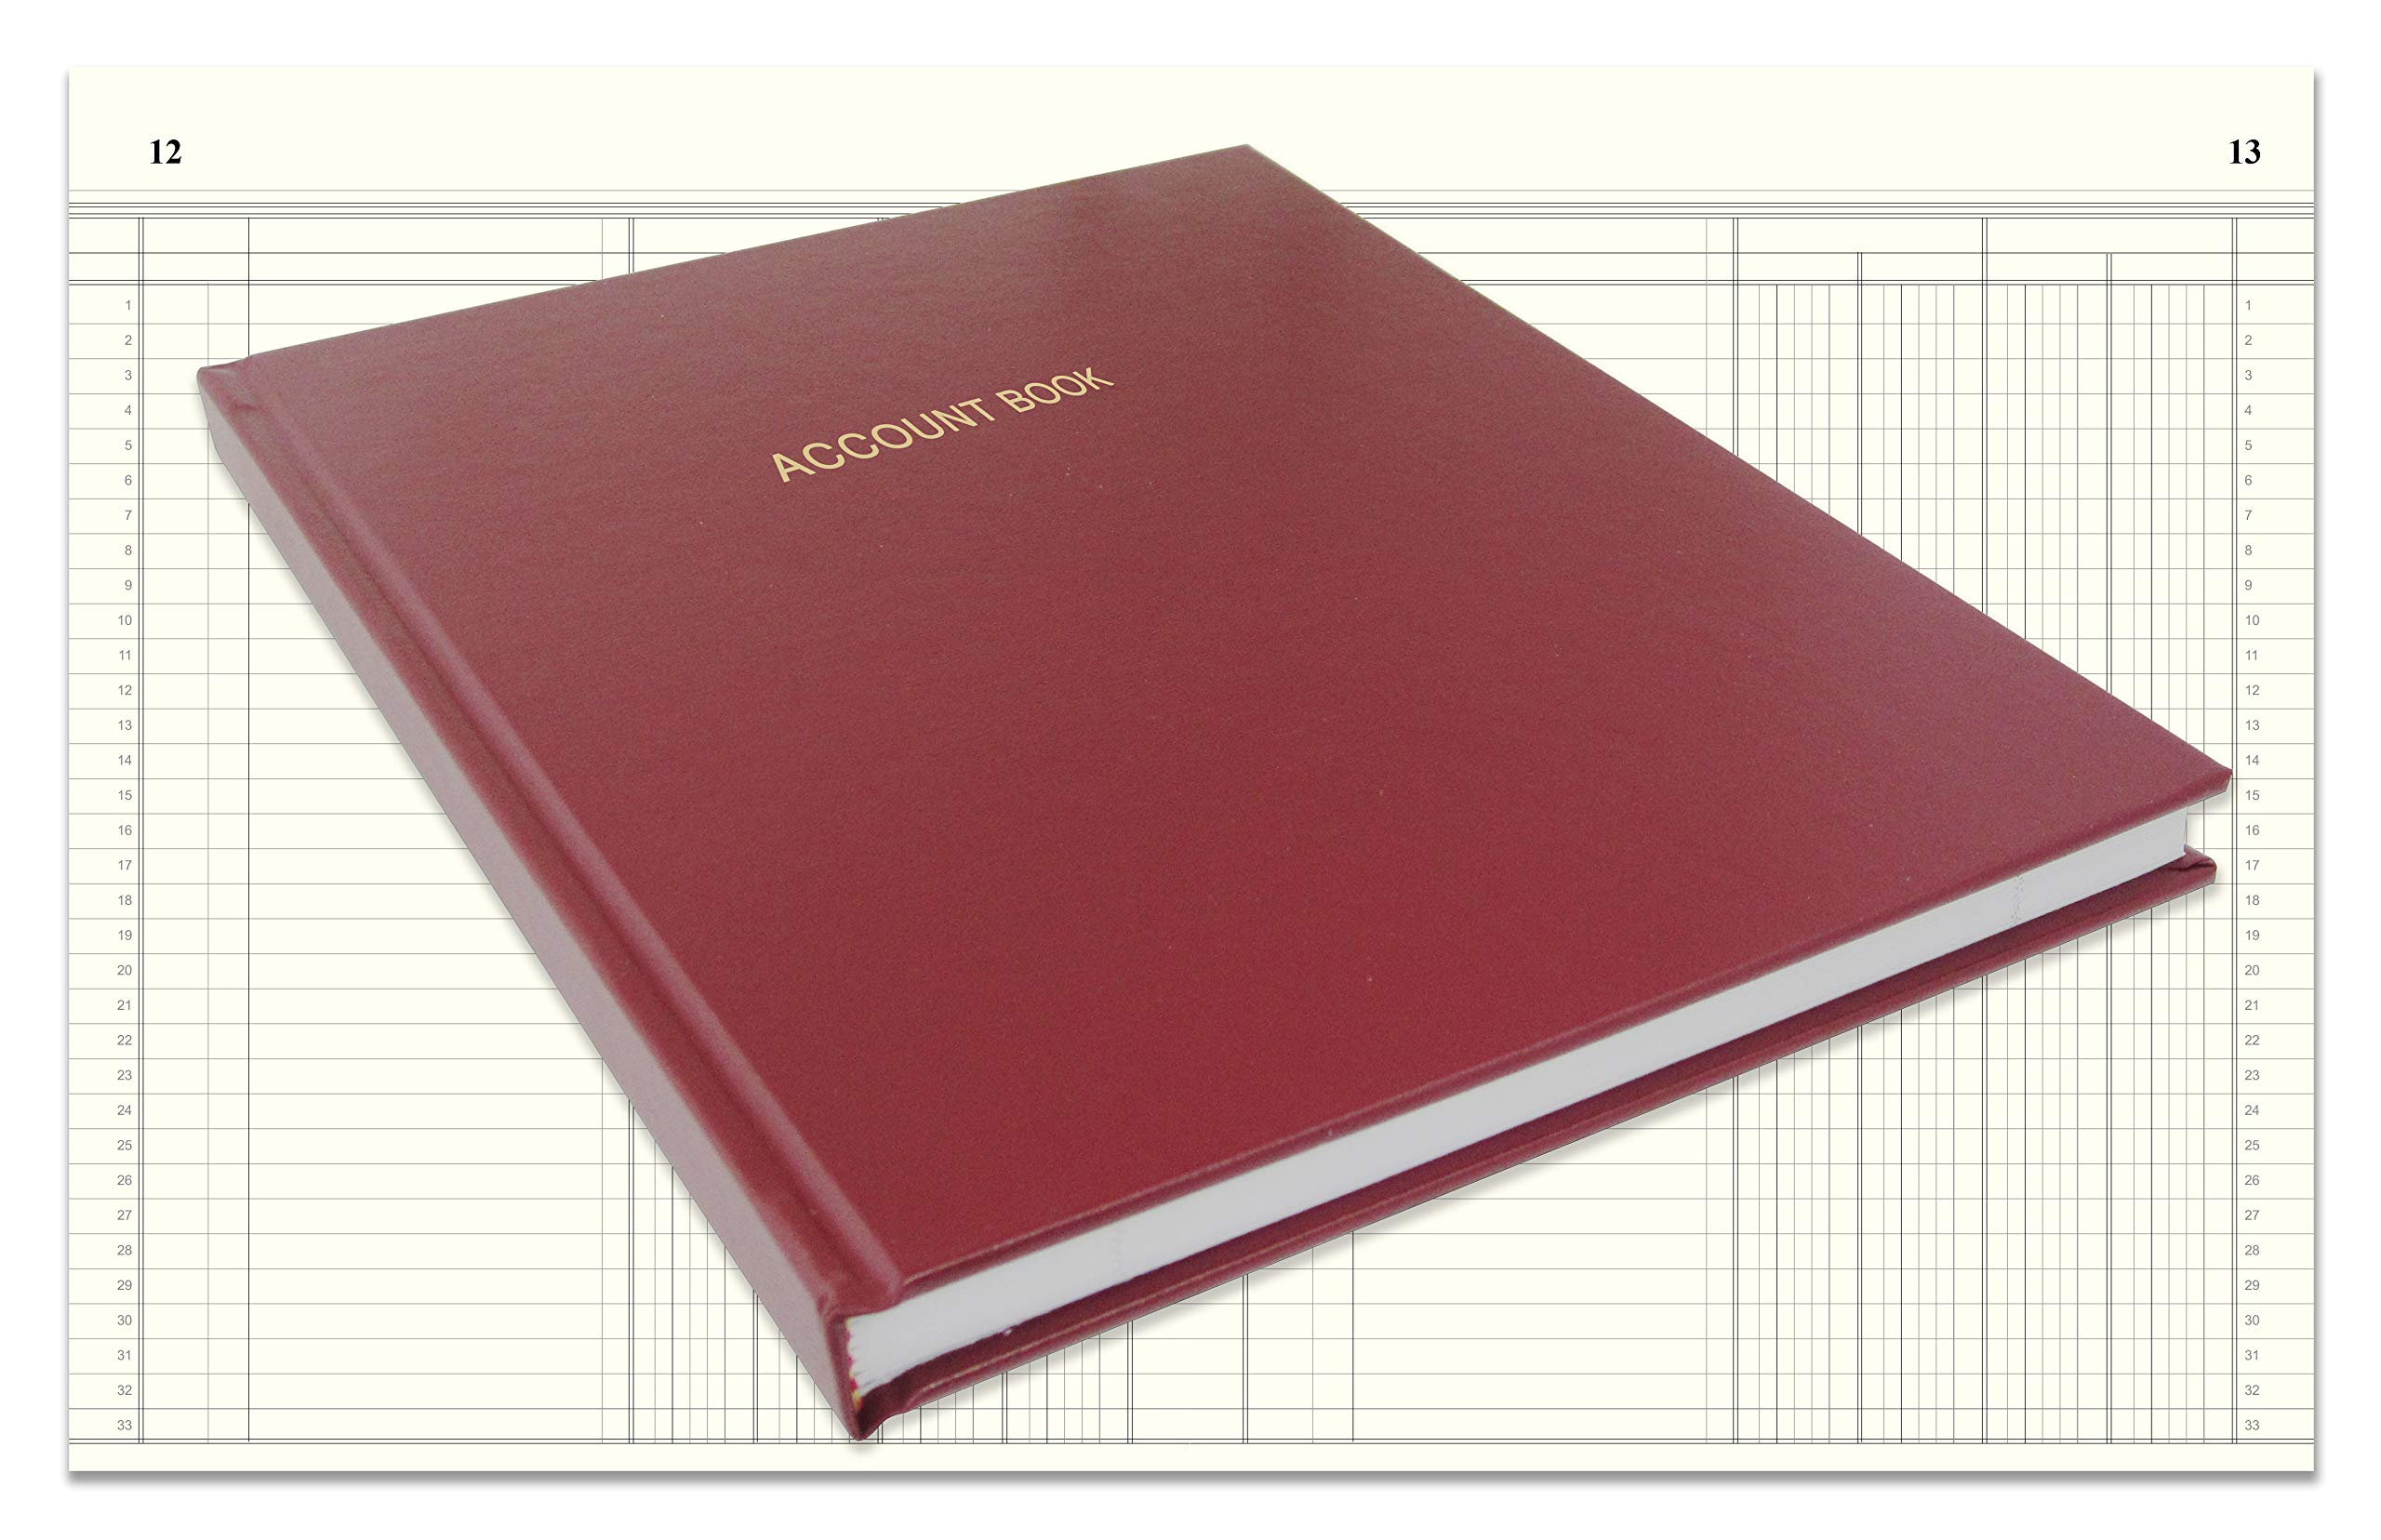 BookFactory Account Book/Ledger Book/Accounting Ledger/Account Notebook (4 Column Columnar Book Format) - 96 Pages, 8'' x 10'', Burgundy Cover, Smyth Sewn Hardbound (ACT-096-S4CM-A-LMT16) by BookFactory